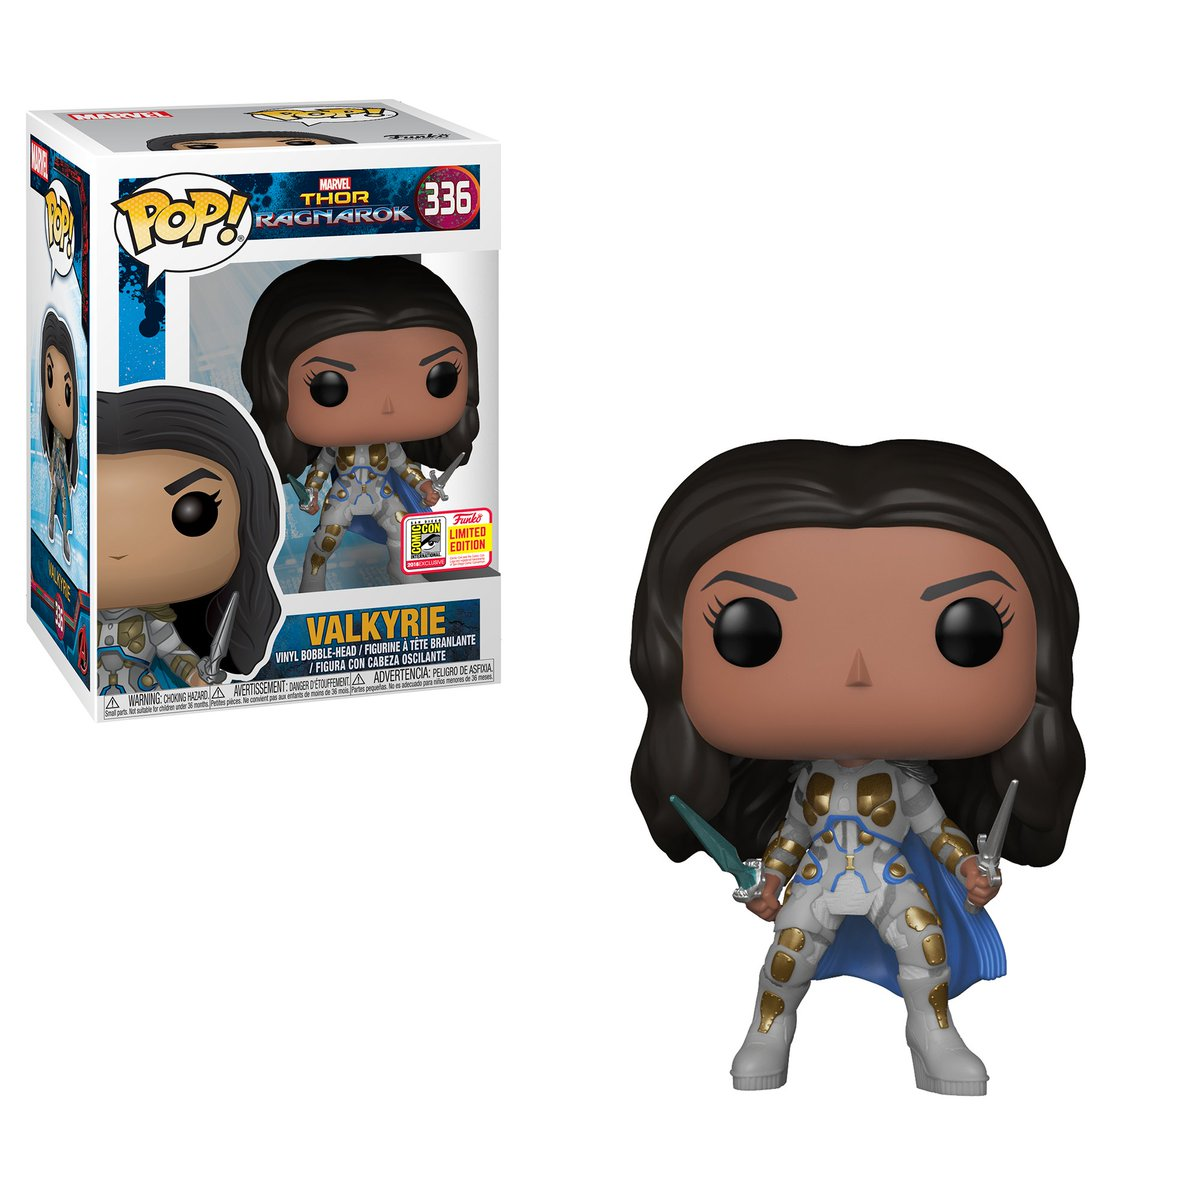 RT &amp; follow @OriginalFunko for the chance to win an #SDCC 2018 exclusive Valkyrie Pop!<br>http://pic.twitter.com/0tmum5gzze